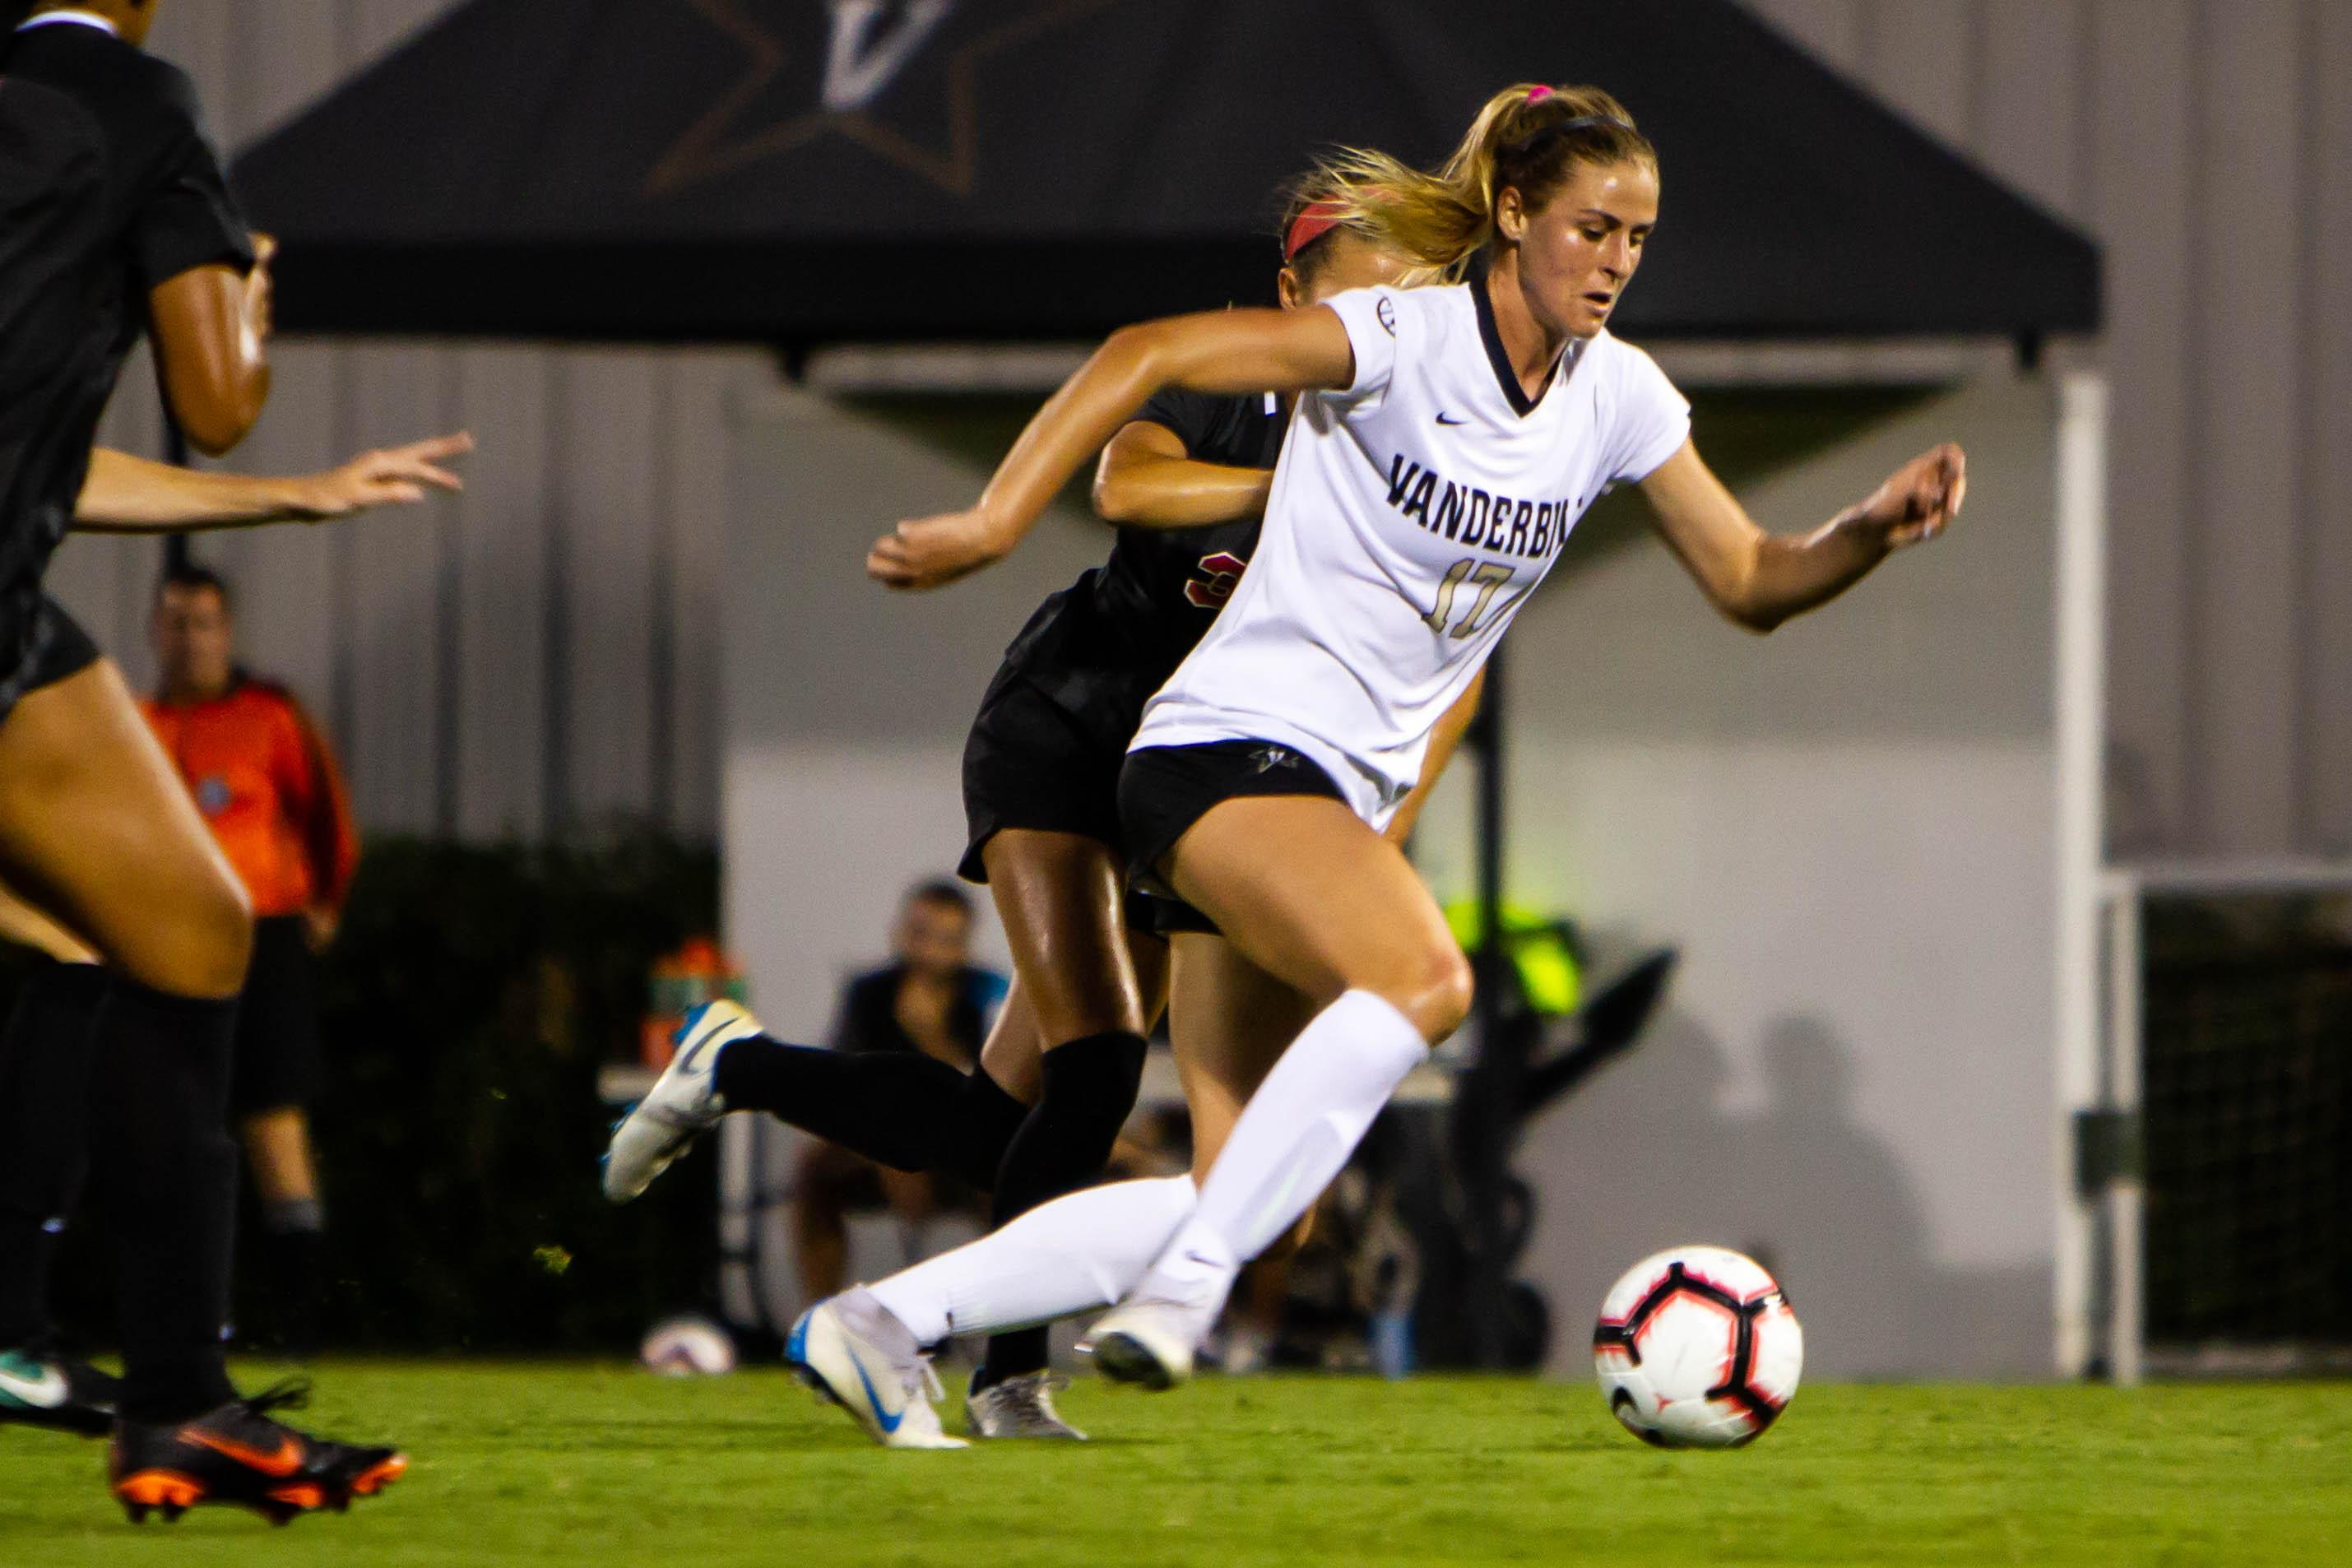 Vanderbilt soccer opens tournament play with 2-1 victory over Alabama